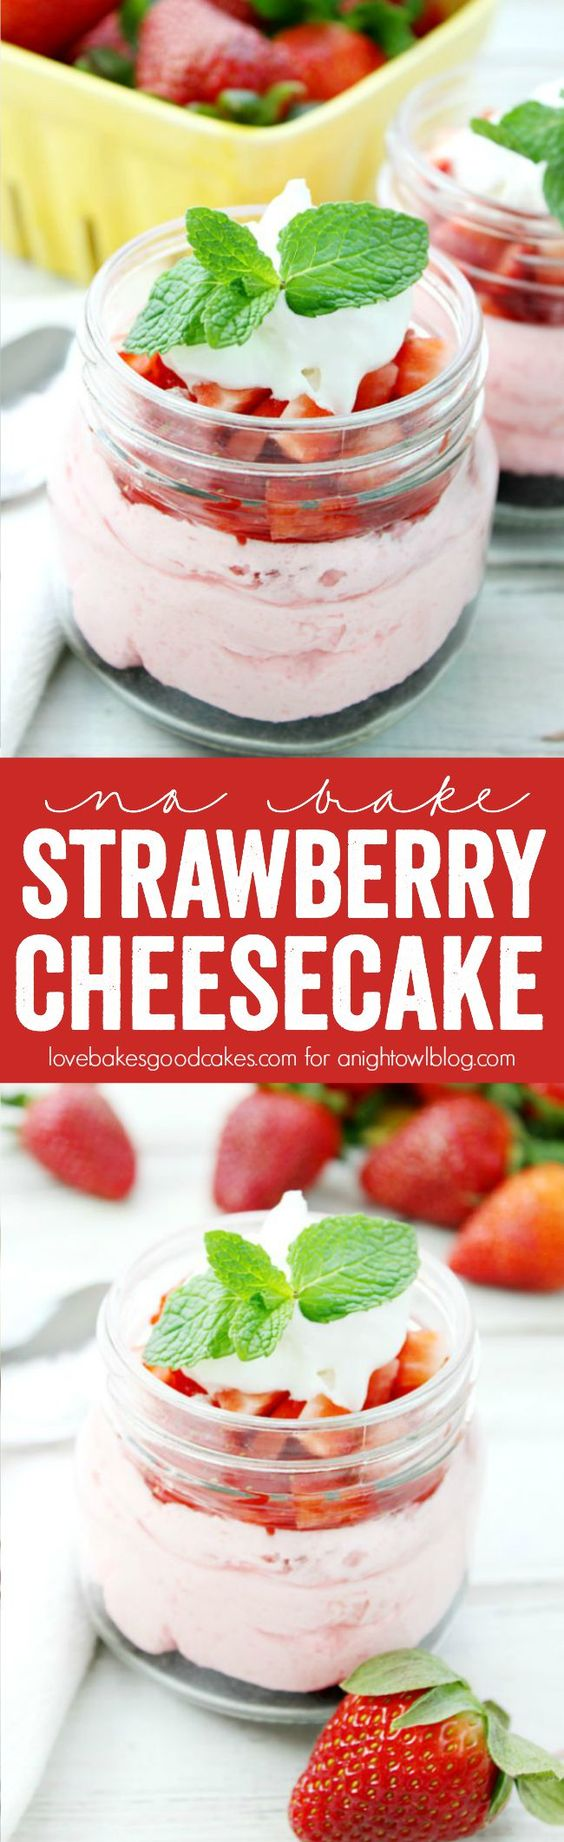 This No Bake Strawberry Cheesecake Jars recipe is perfect for Spring! Easy to make!